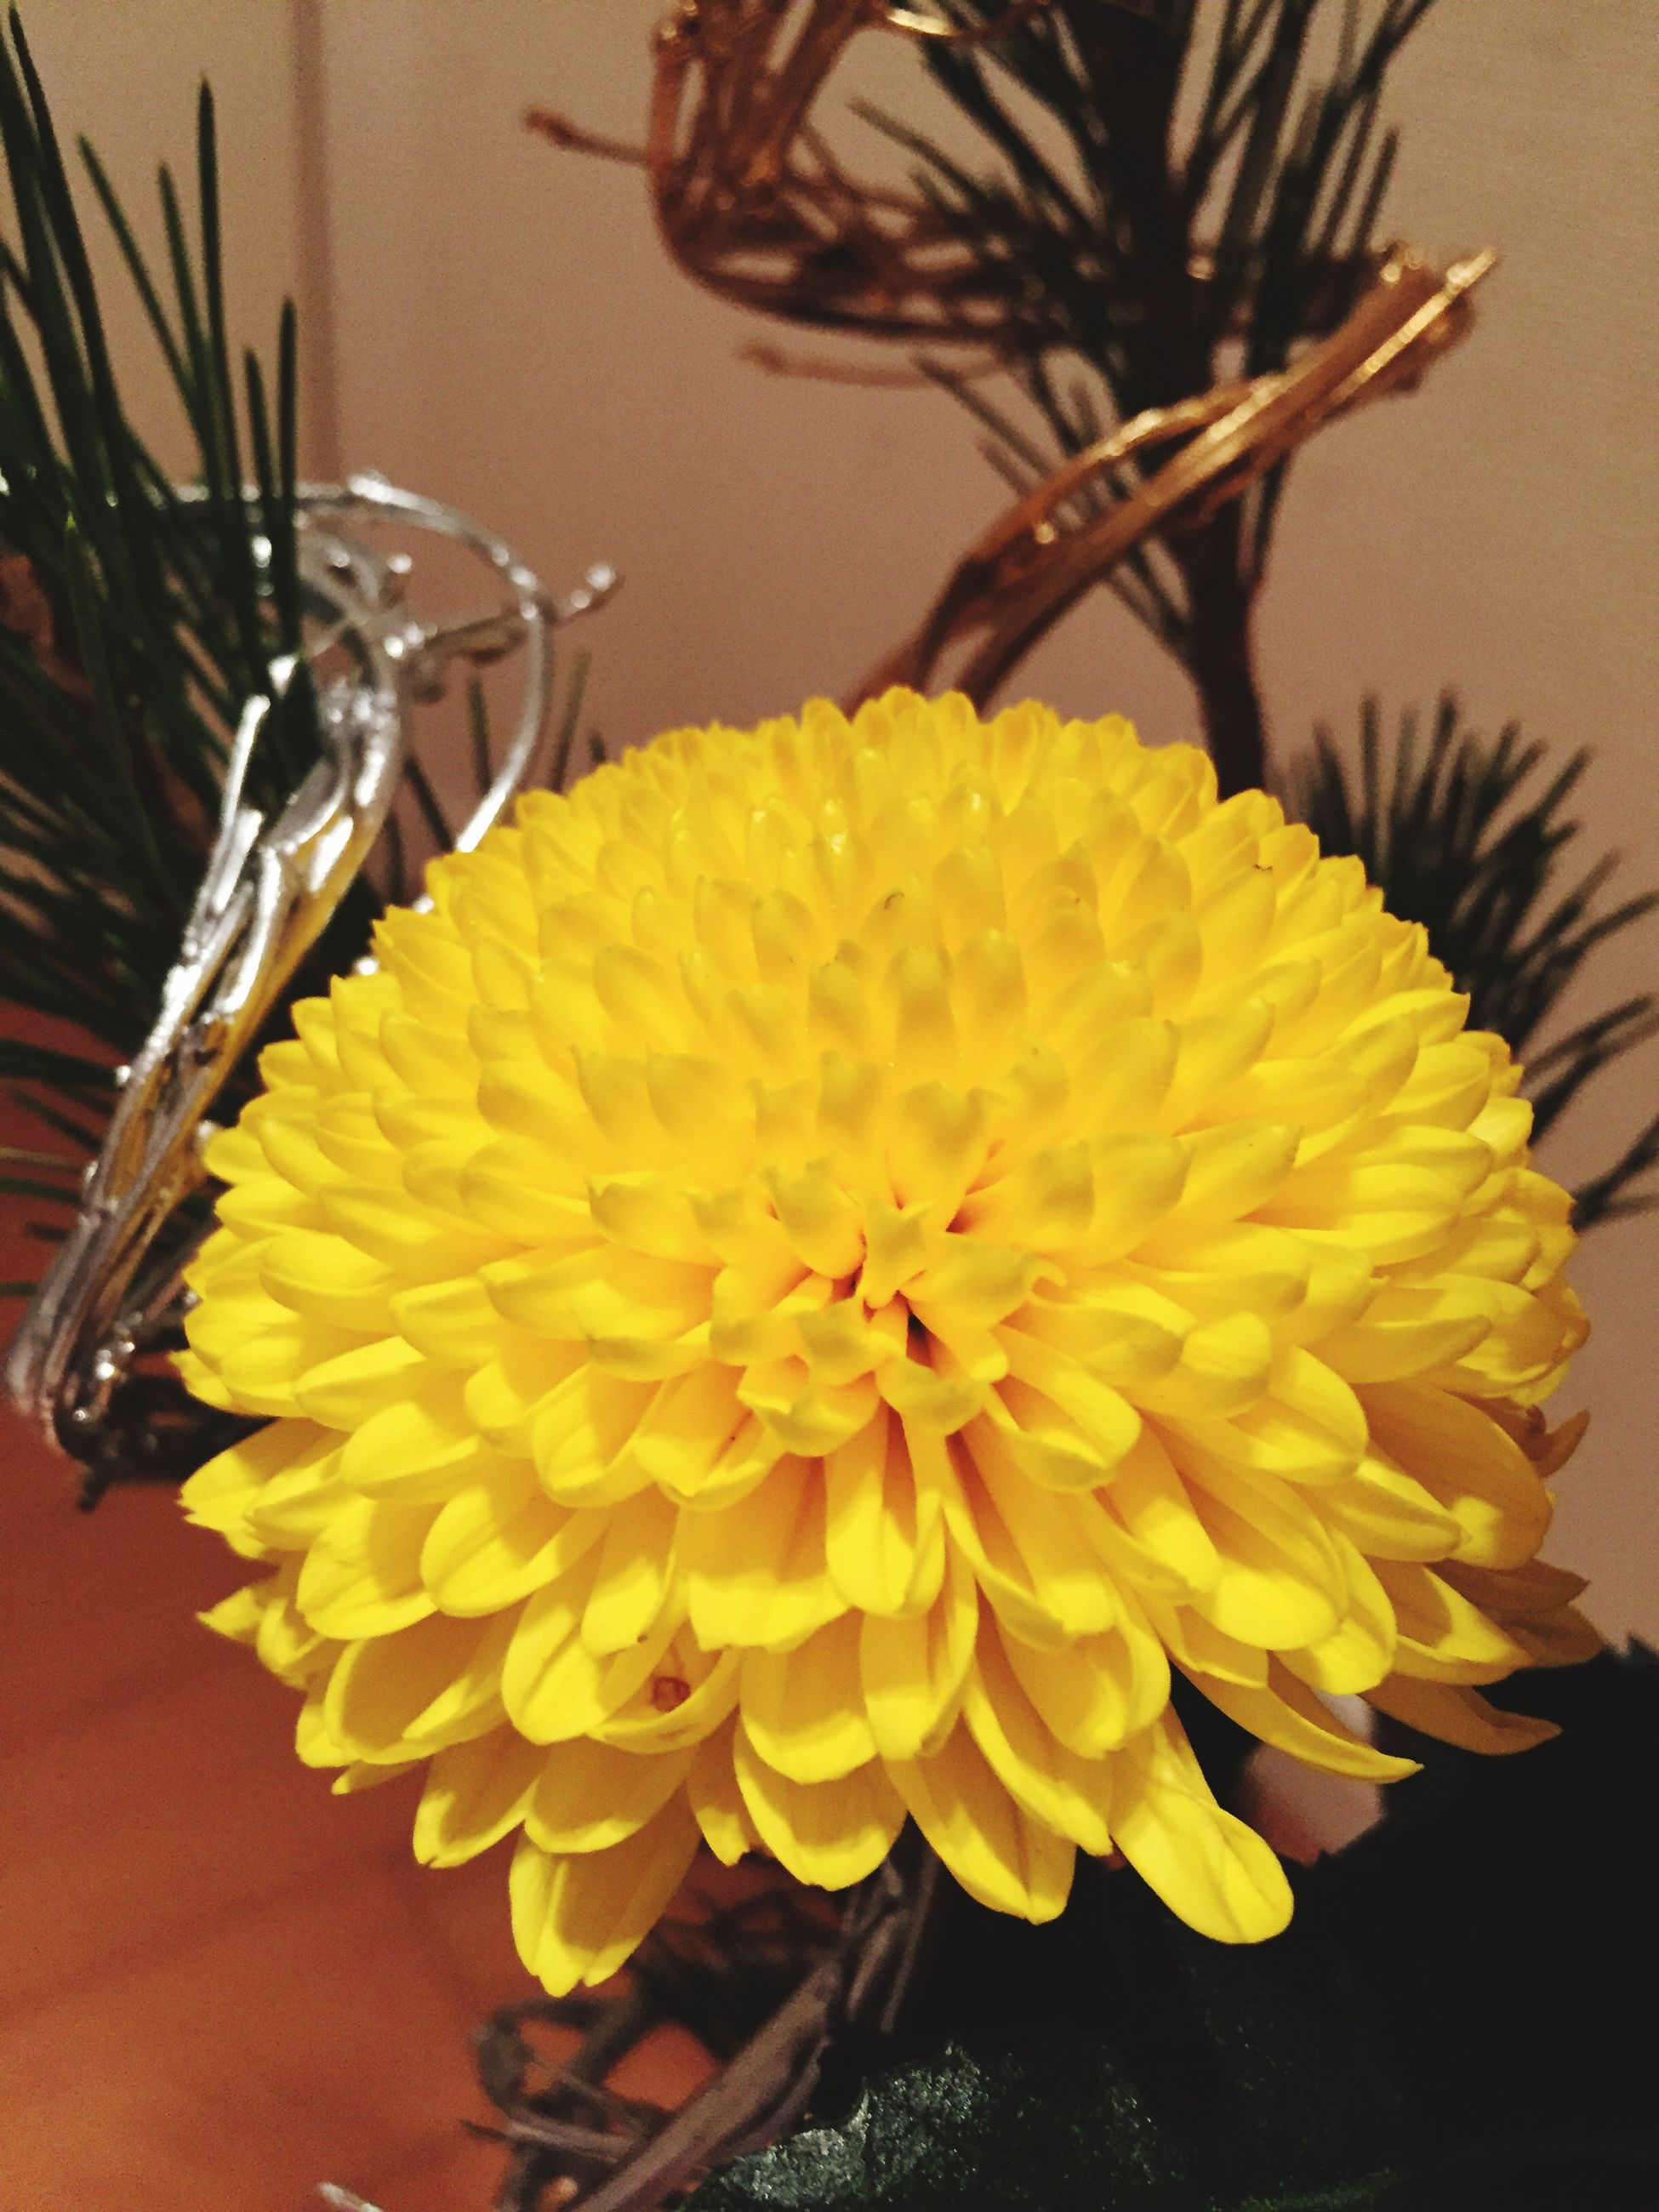 flower, freshness, flower head, yellow, petal, fragility, indoors, close-up, beauty in nature, growth, plant, single flower, table, high angle view, vase, nature, pollen, potted plant, focus on foreground, no people